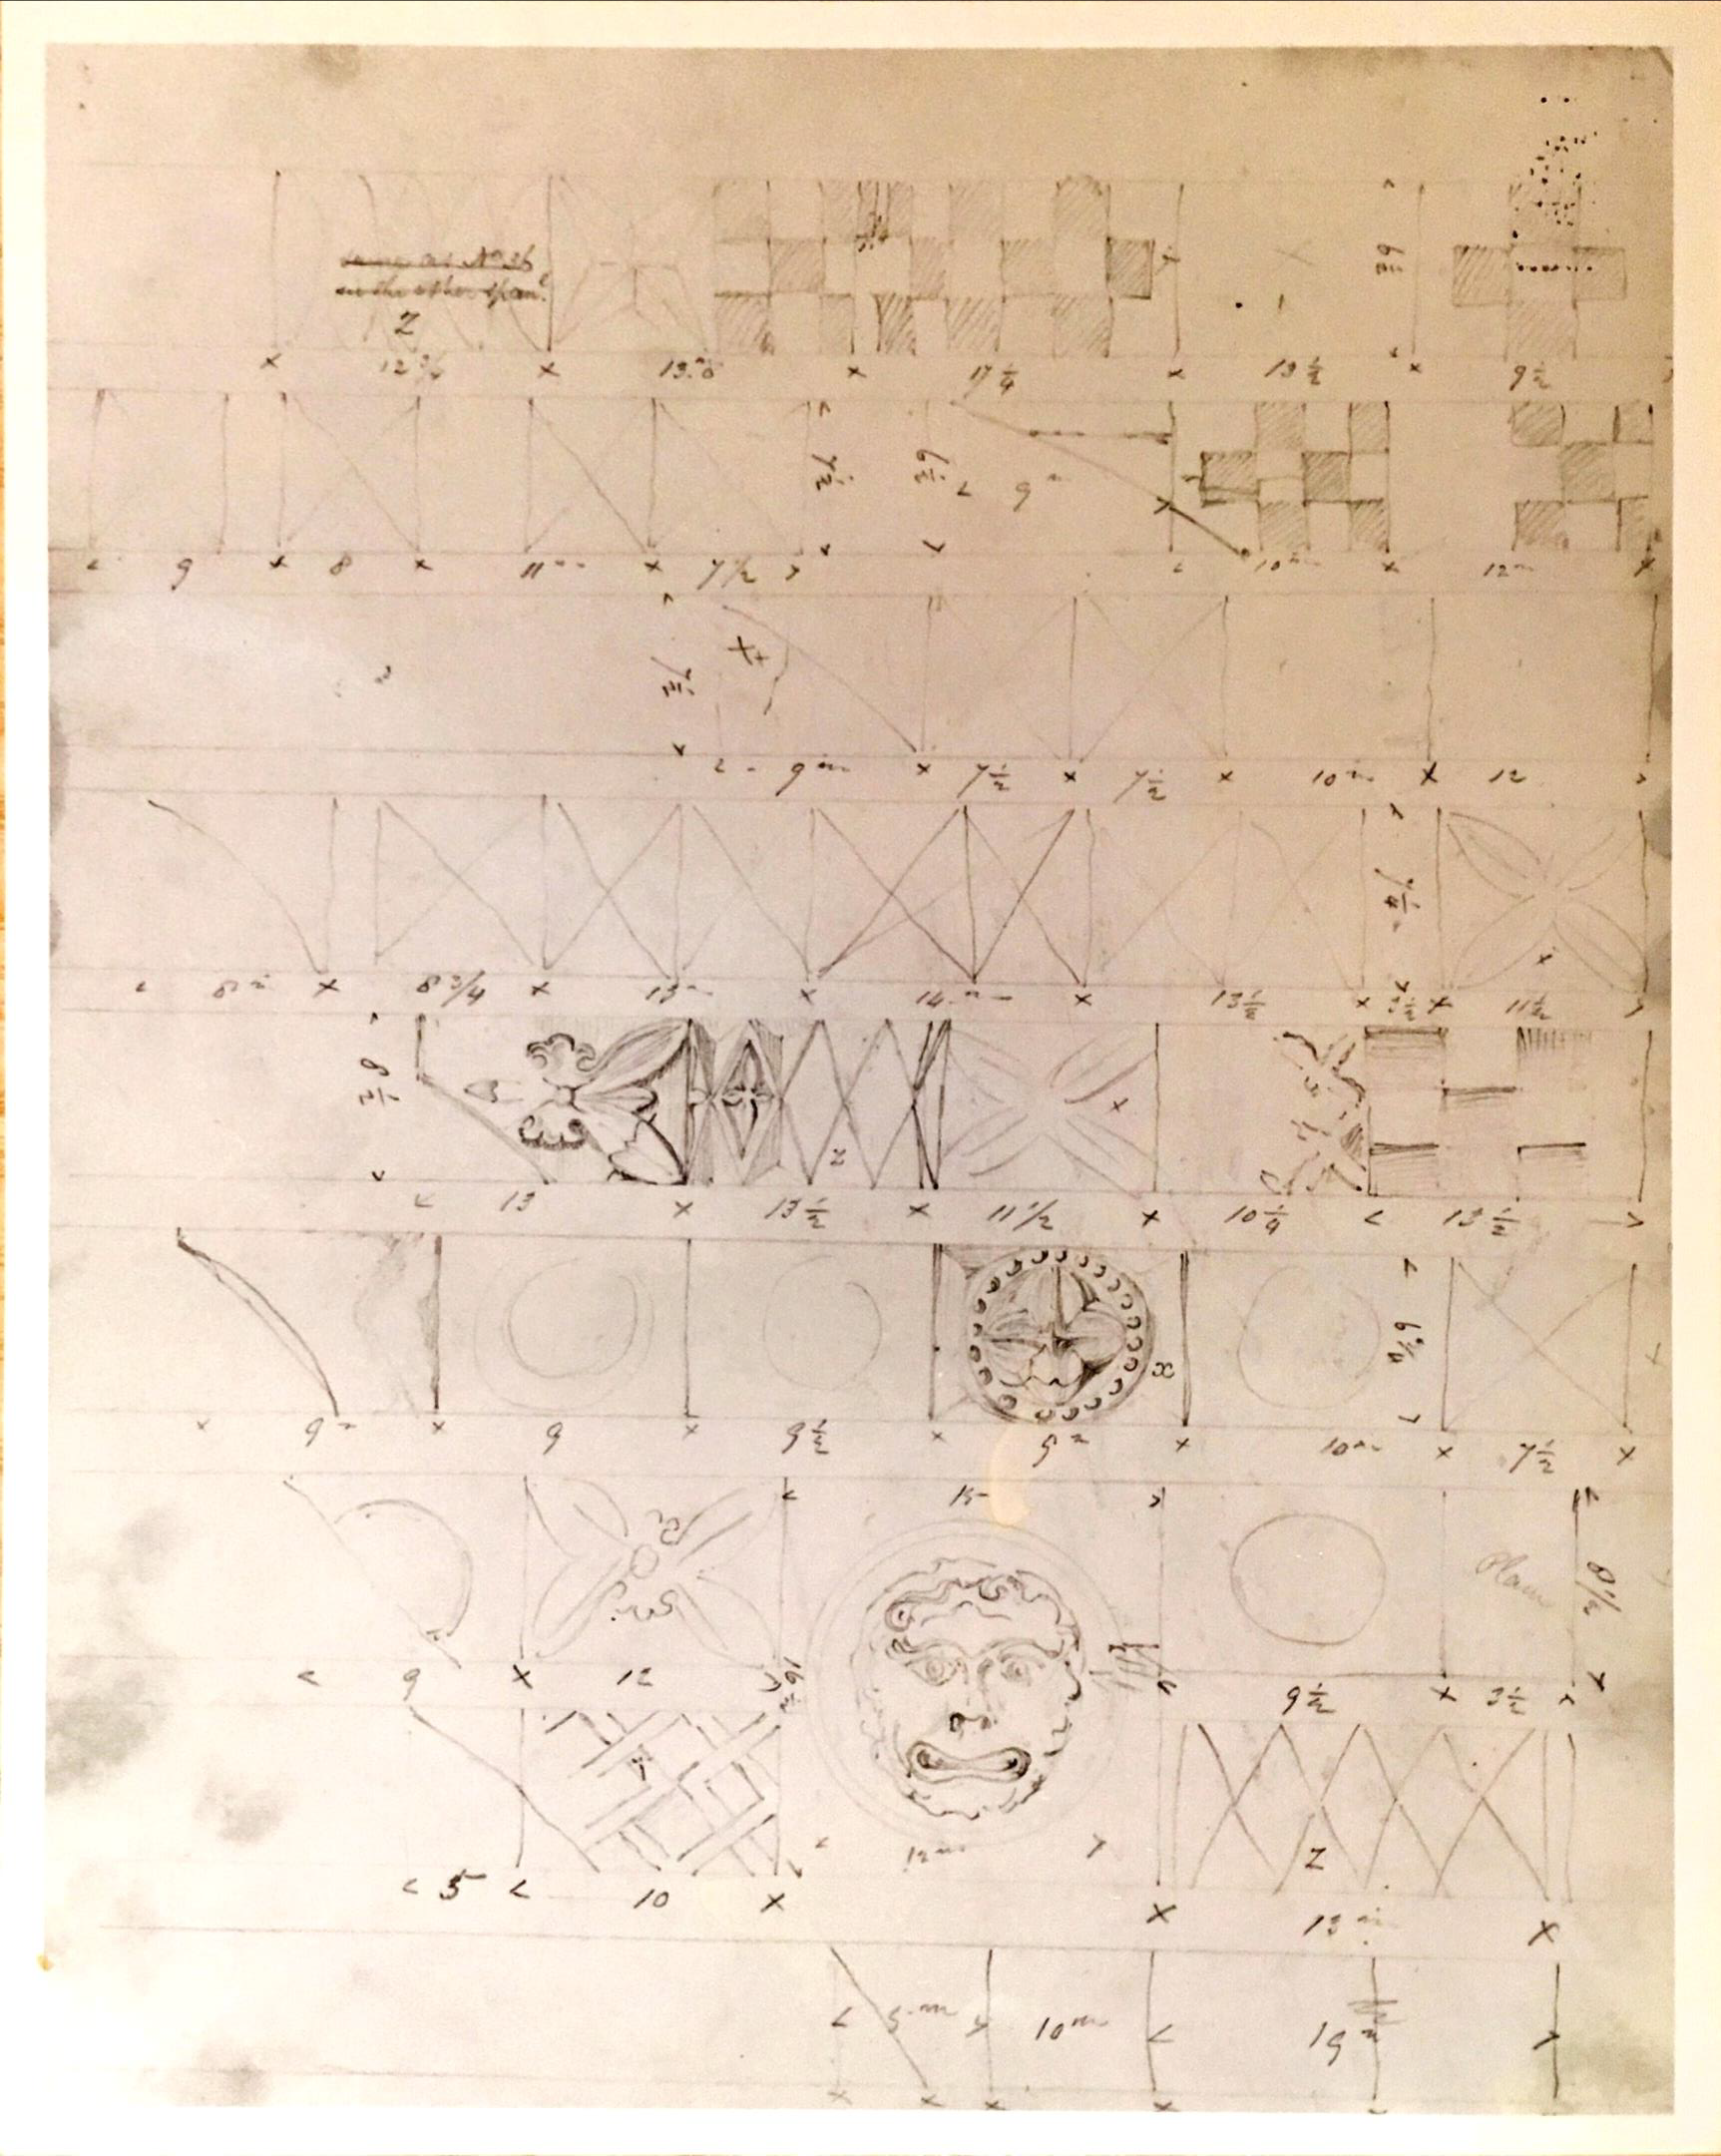 Figure 3. One of L. N. Cottingham's sketches of the sculptural decoration removed from the Great West Window spandrels during restoration work in 1825.